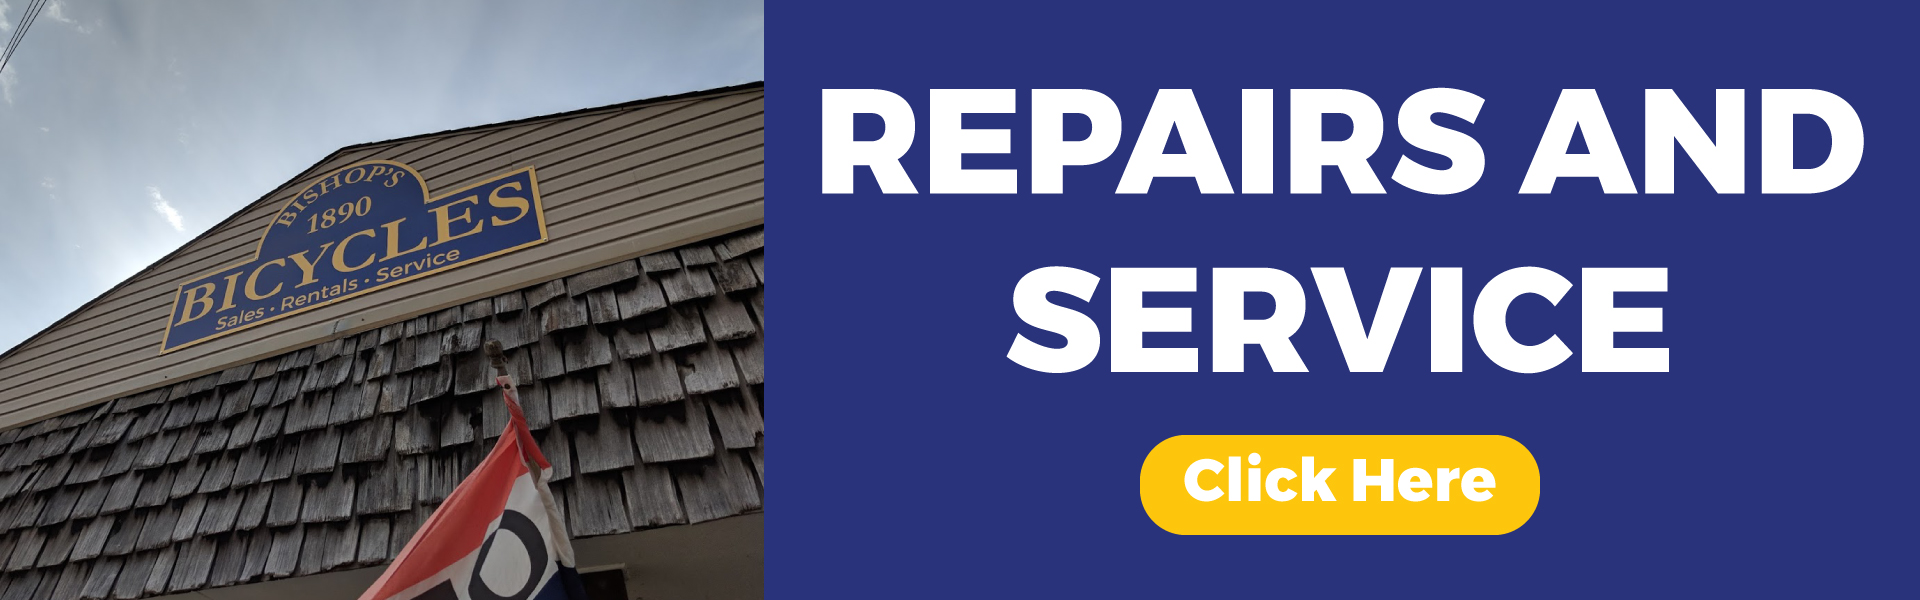 Repairs and Service